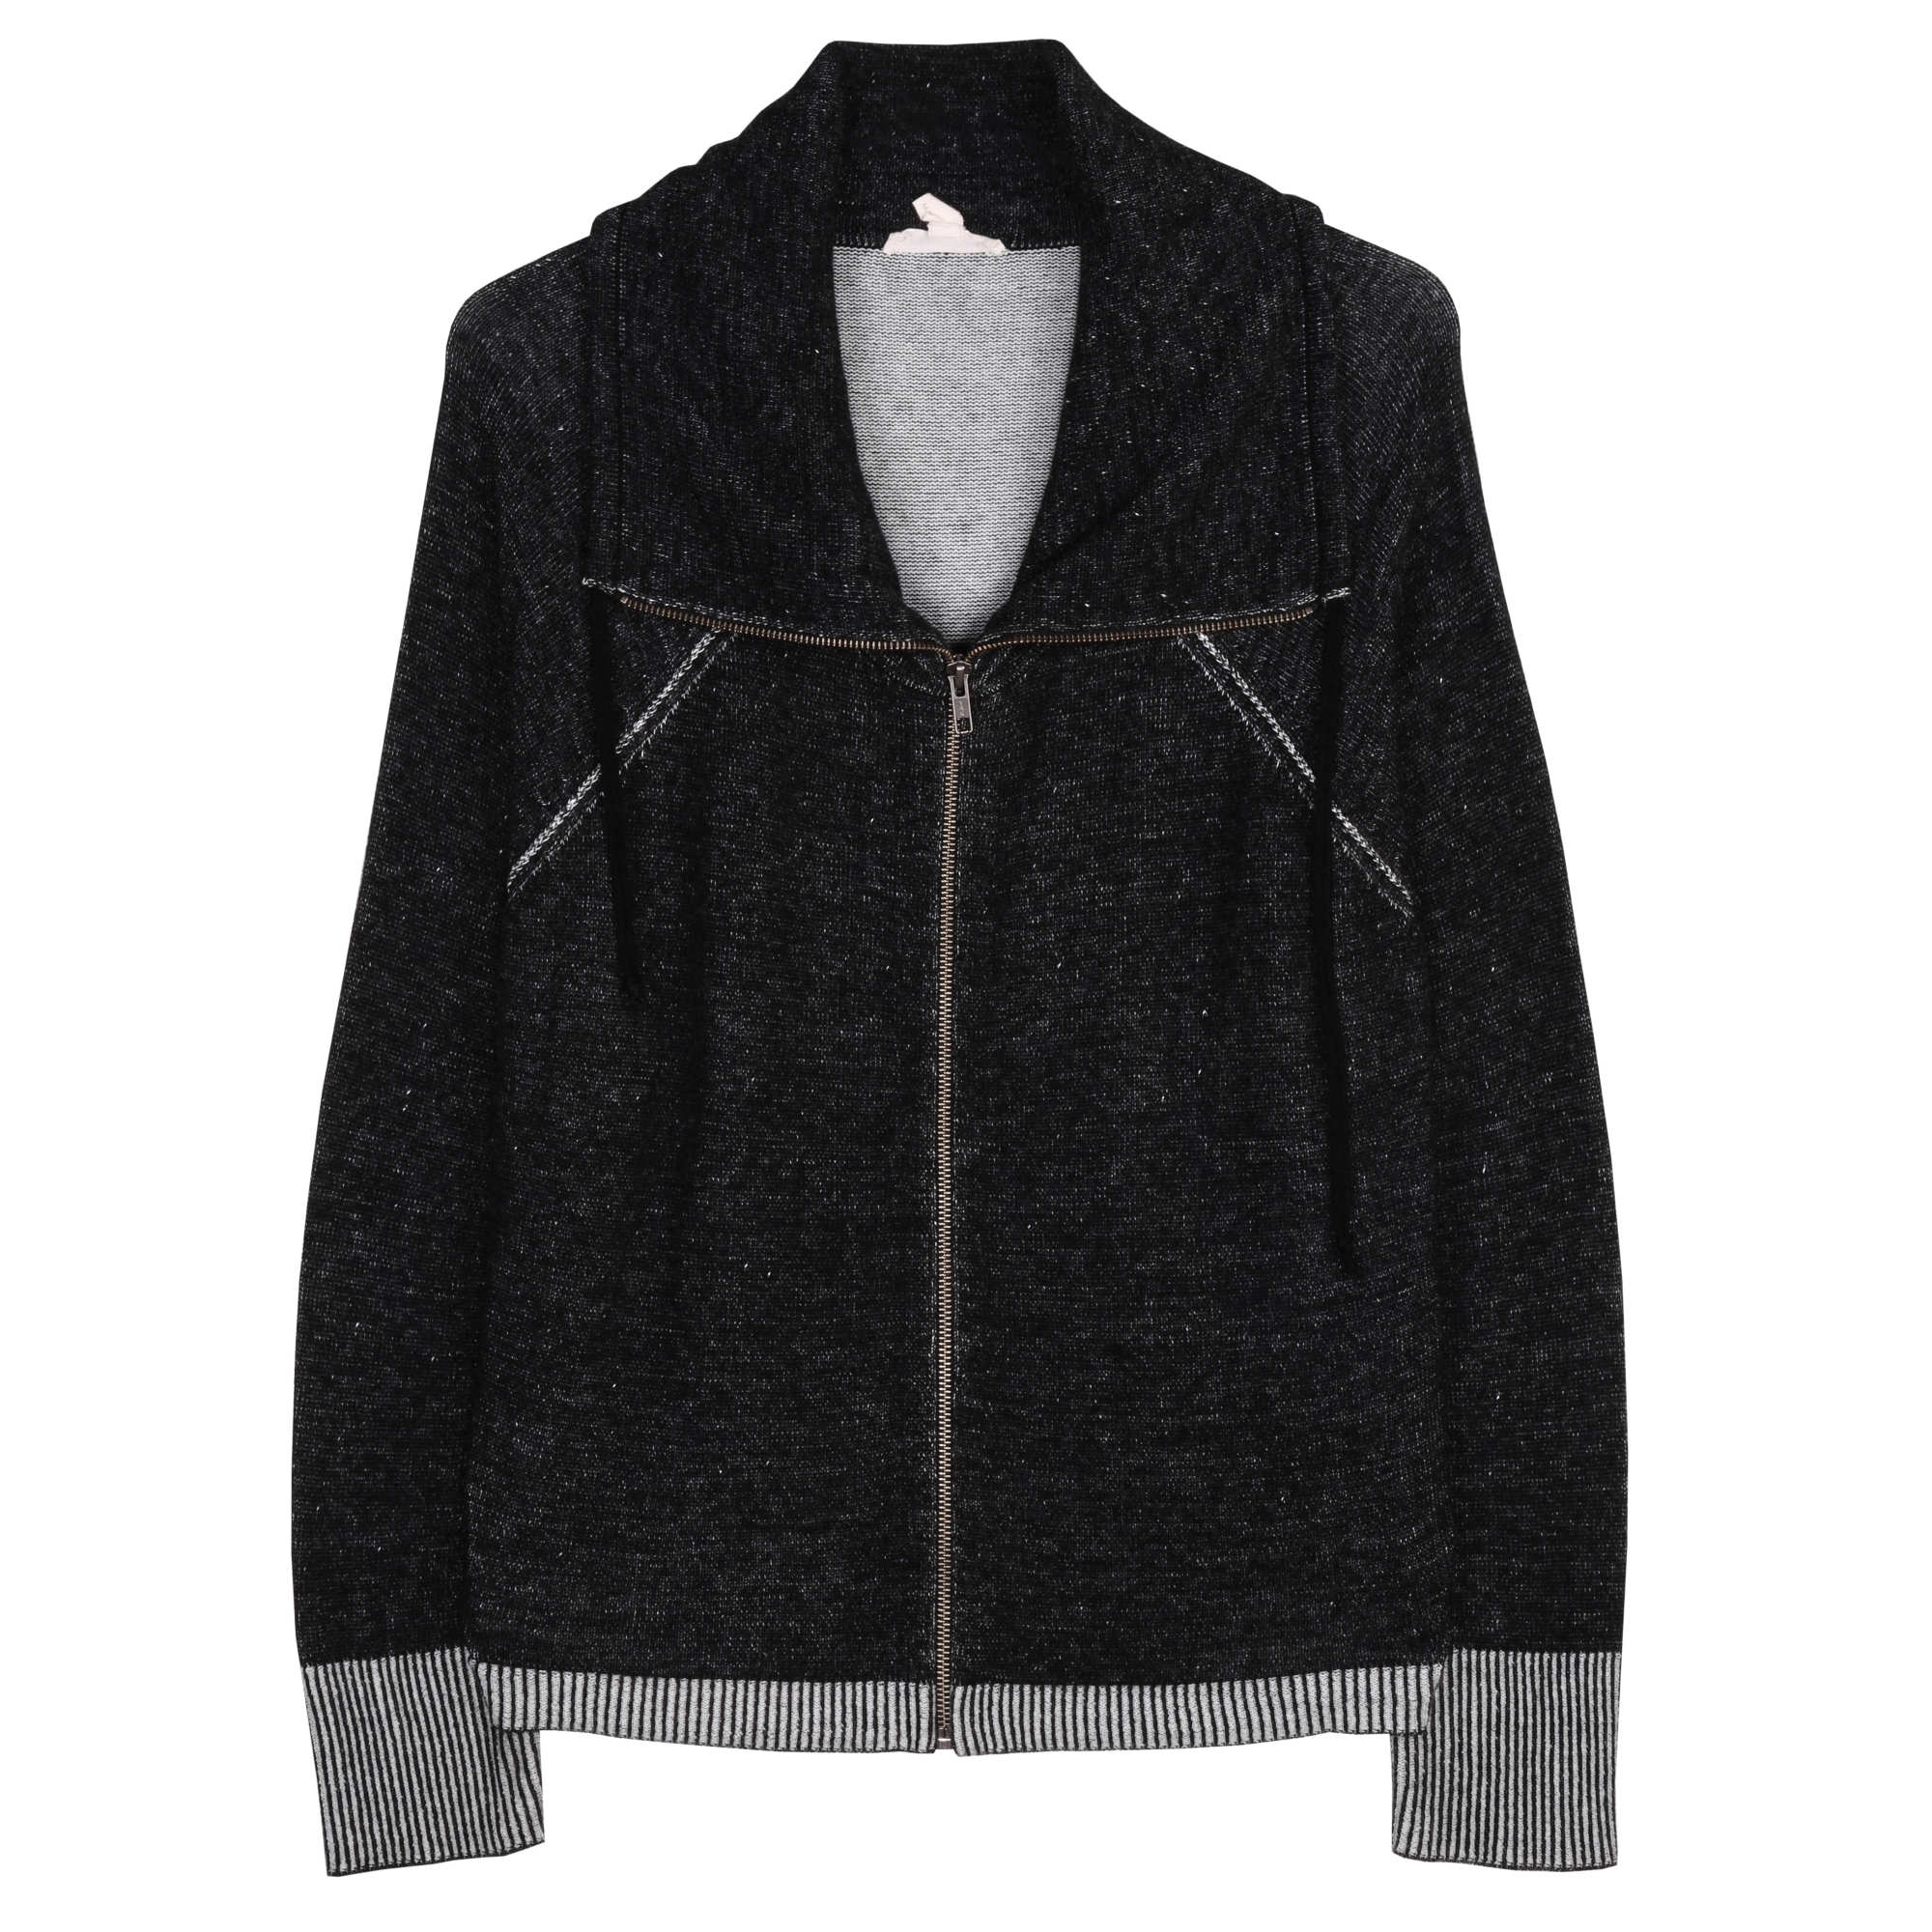 Peruvian Plaited Organic Cotton Jacket